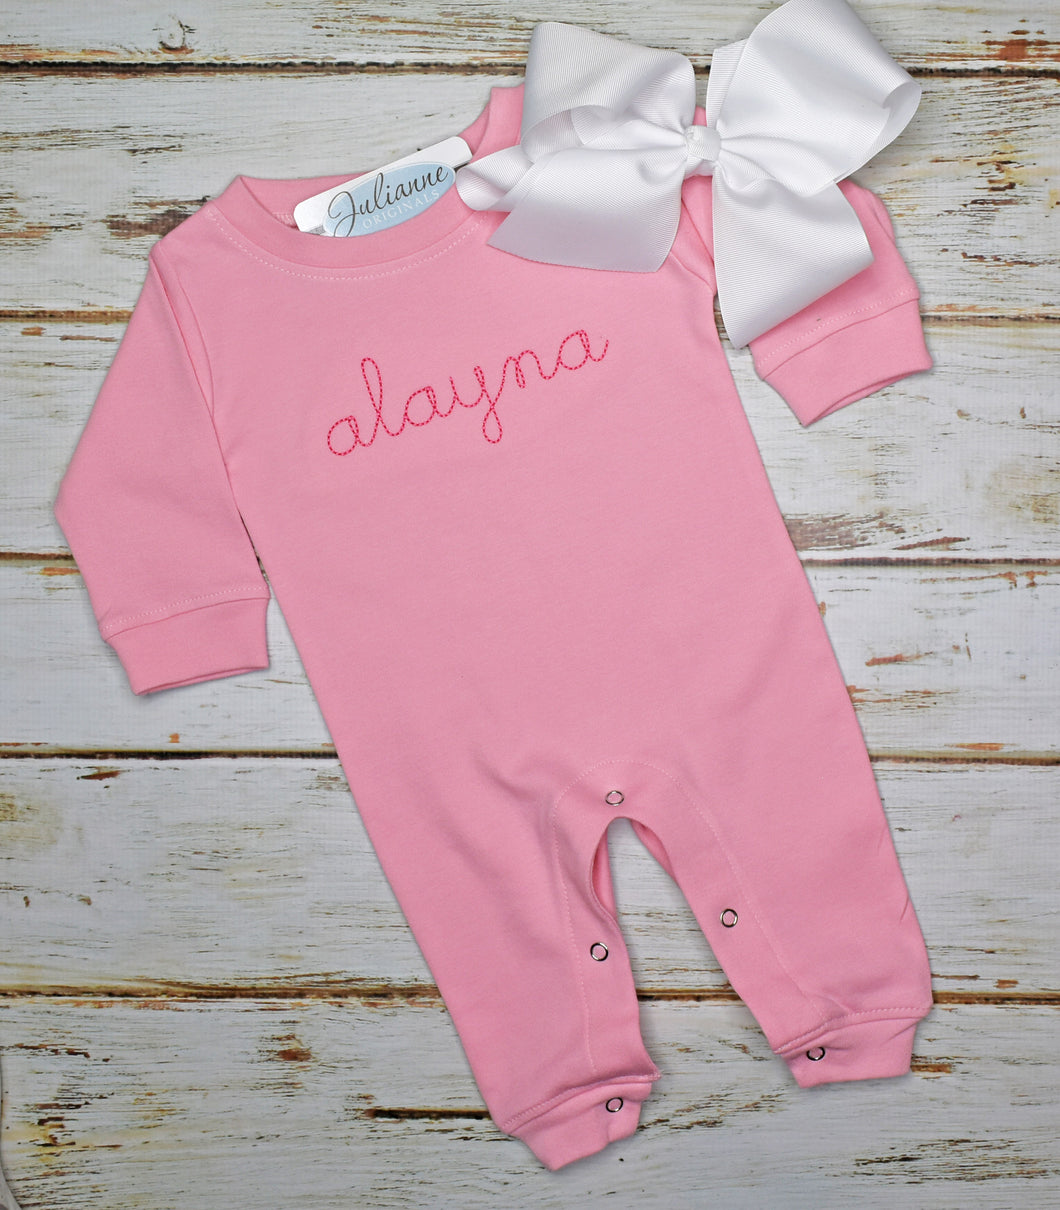 Infant Monogram Romper - Pink